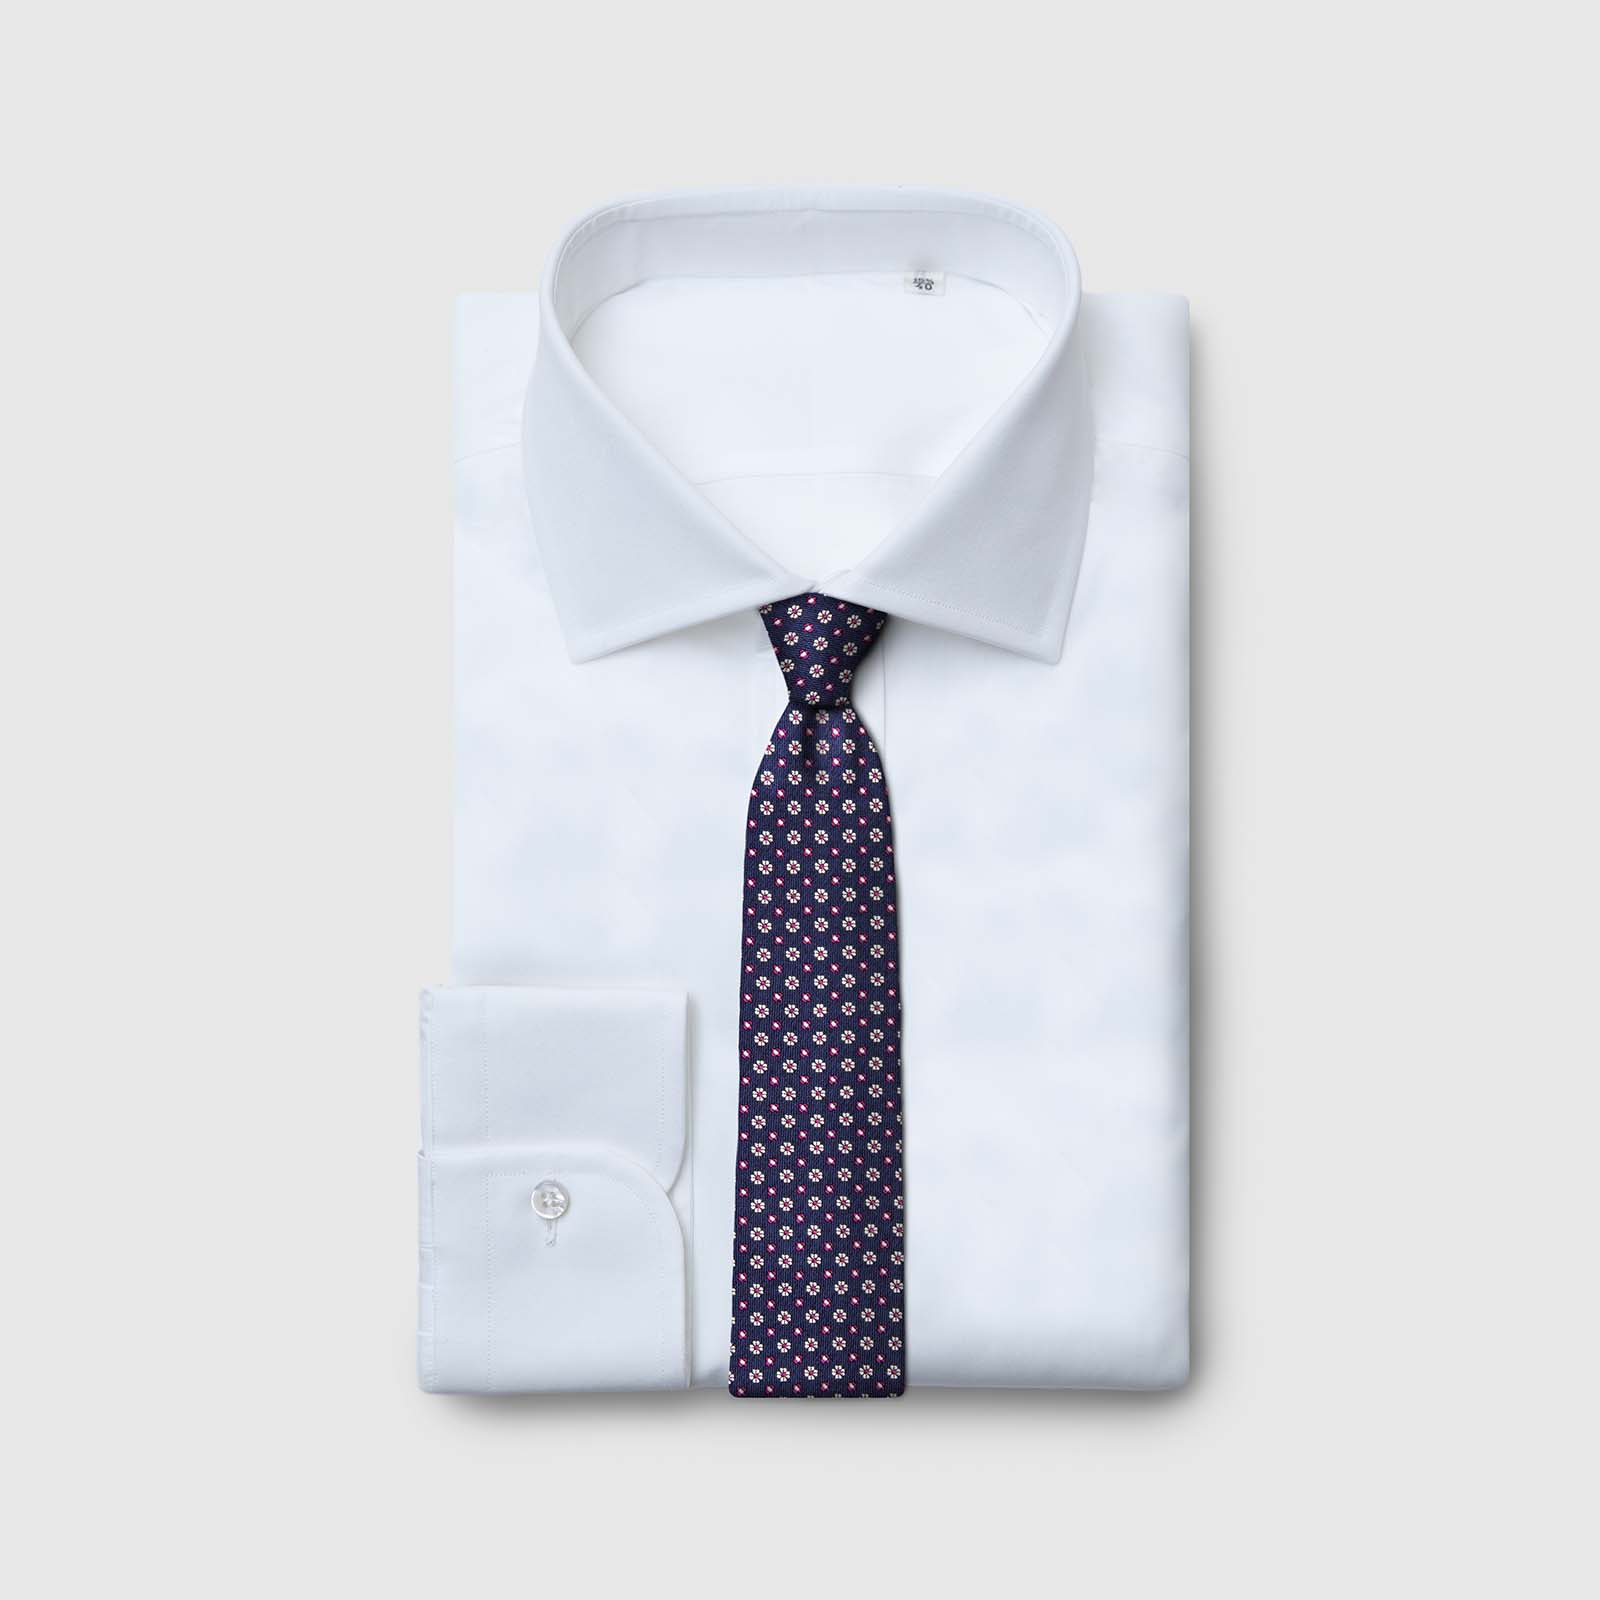 Blue polka dots and floreal 5-Fold Tie